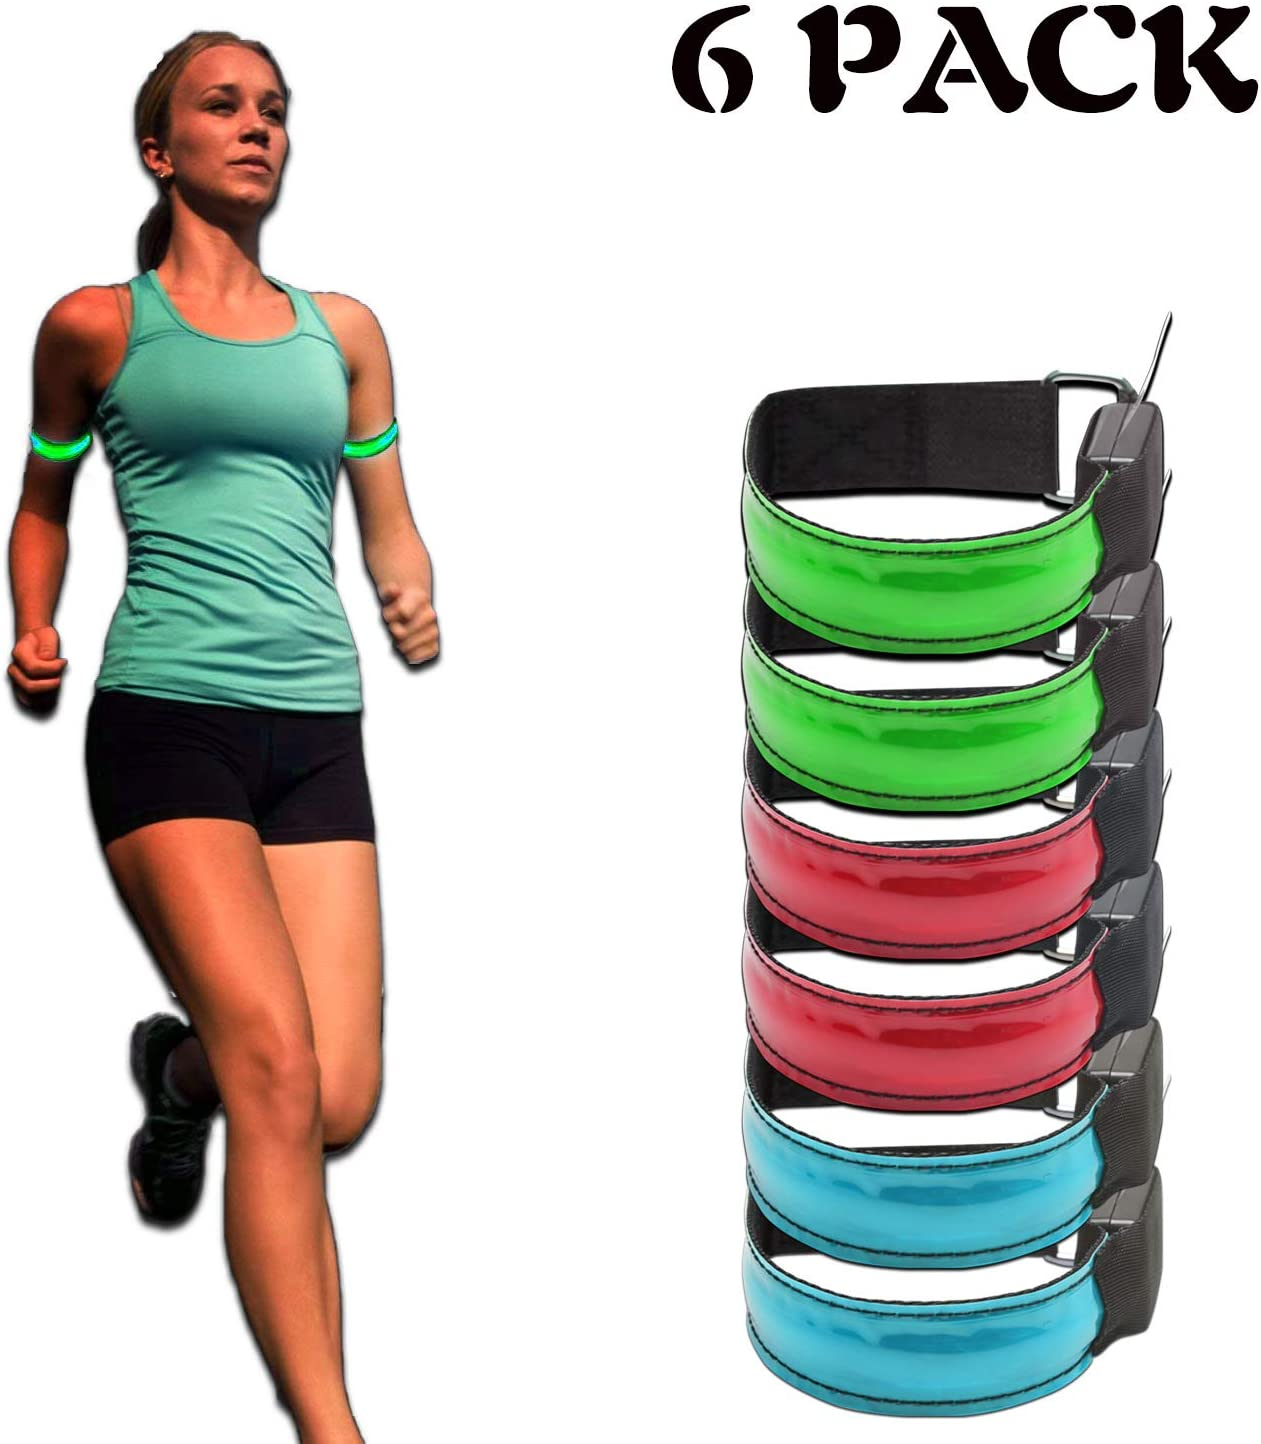 Dog Walking at Night LED Armband Outdoor Exercise /& Activities Jogging 6-Pack Glow Bracelet Safety Light-Up Sports Wristband Ankle Reflective Strips with LED Flashing Lights for Running